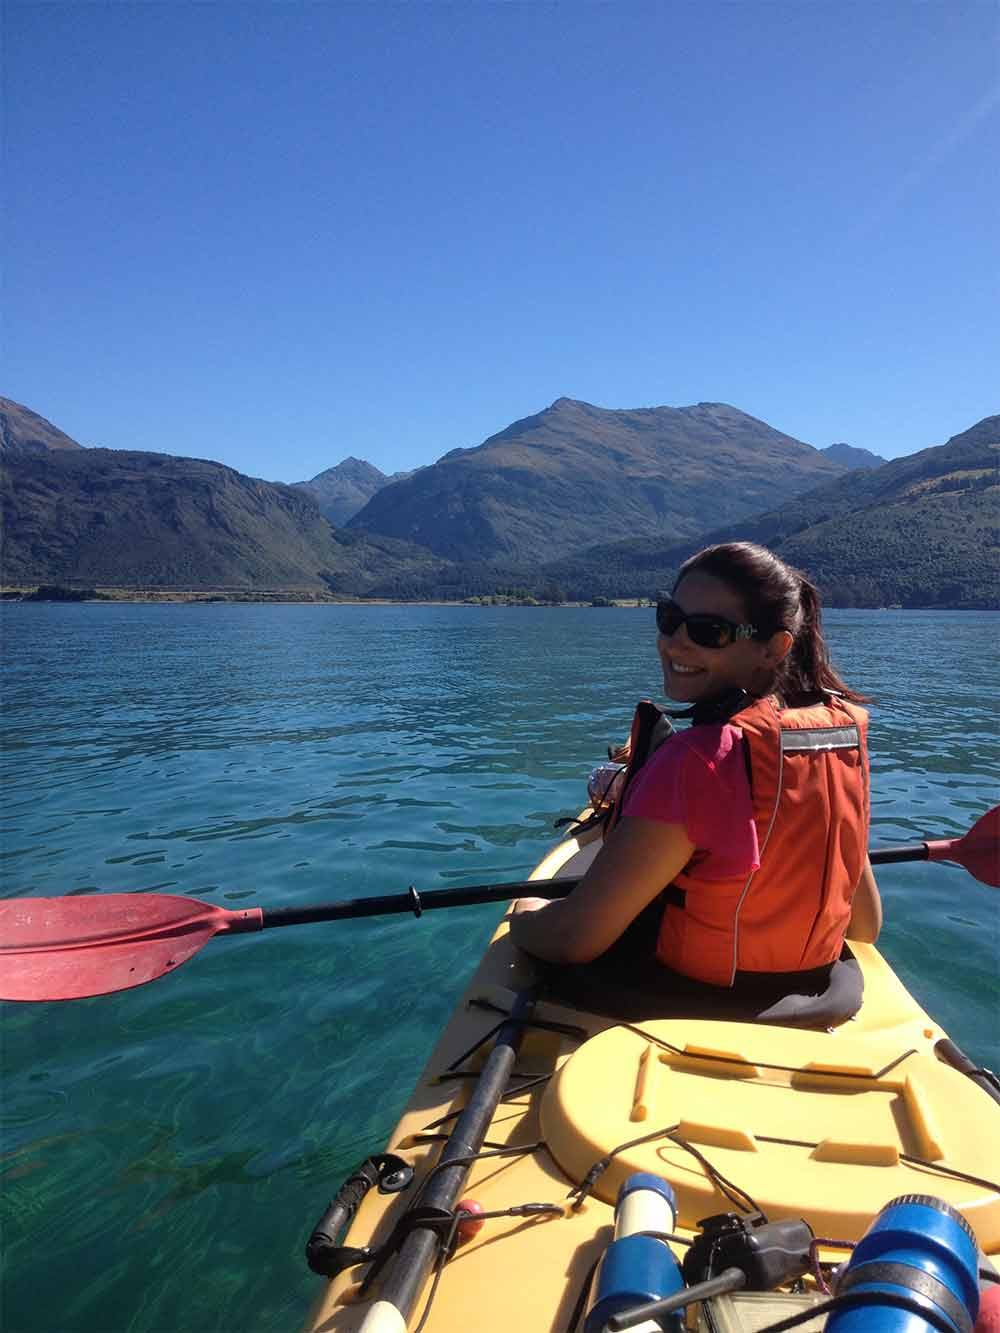 Kayaking at the head of Lake Wakatipu.